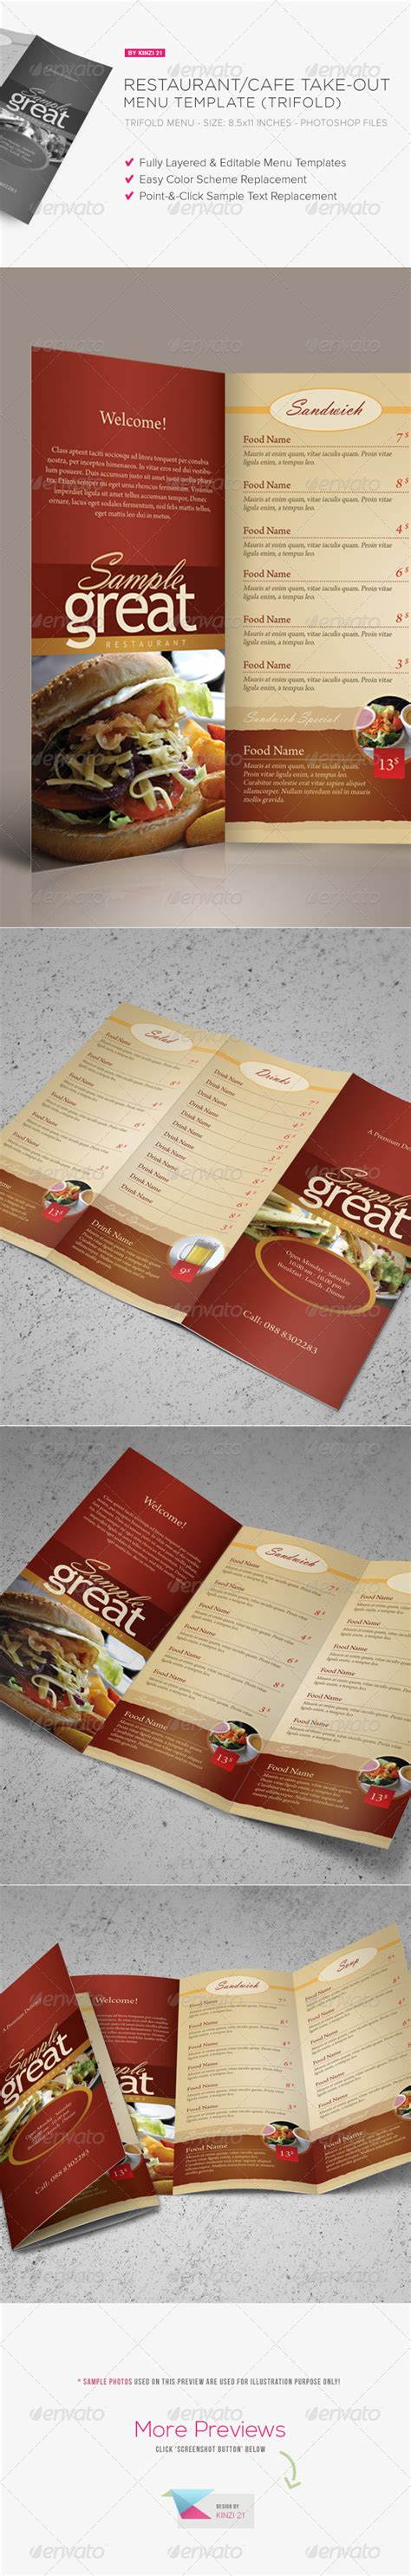 restaurant take out menu templates restaurant cafe take out menu template graphicriver